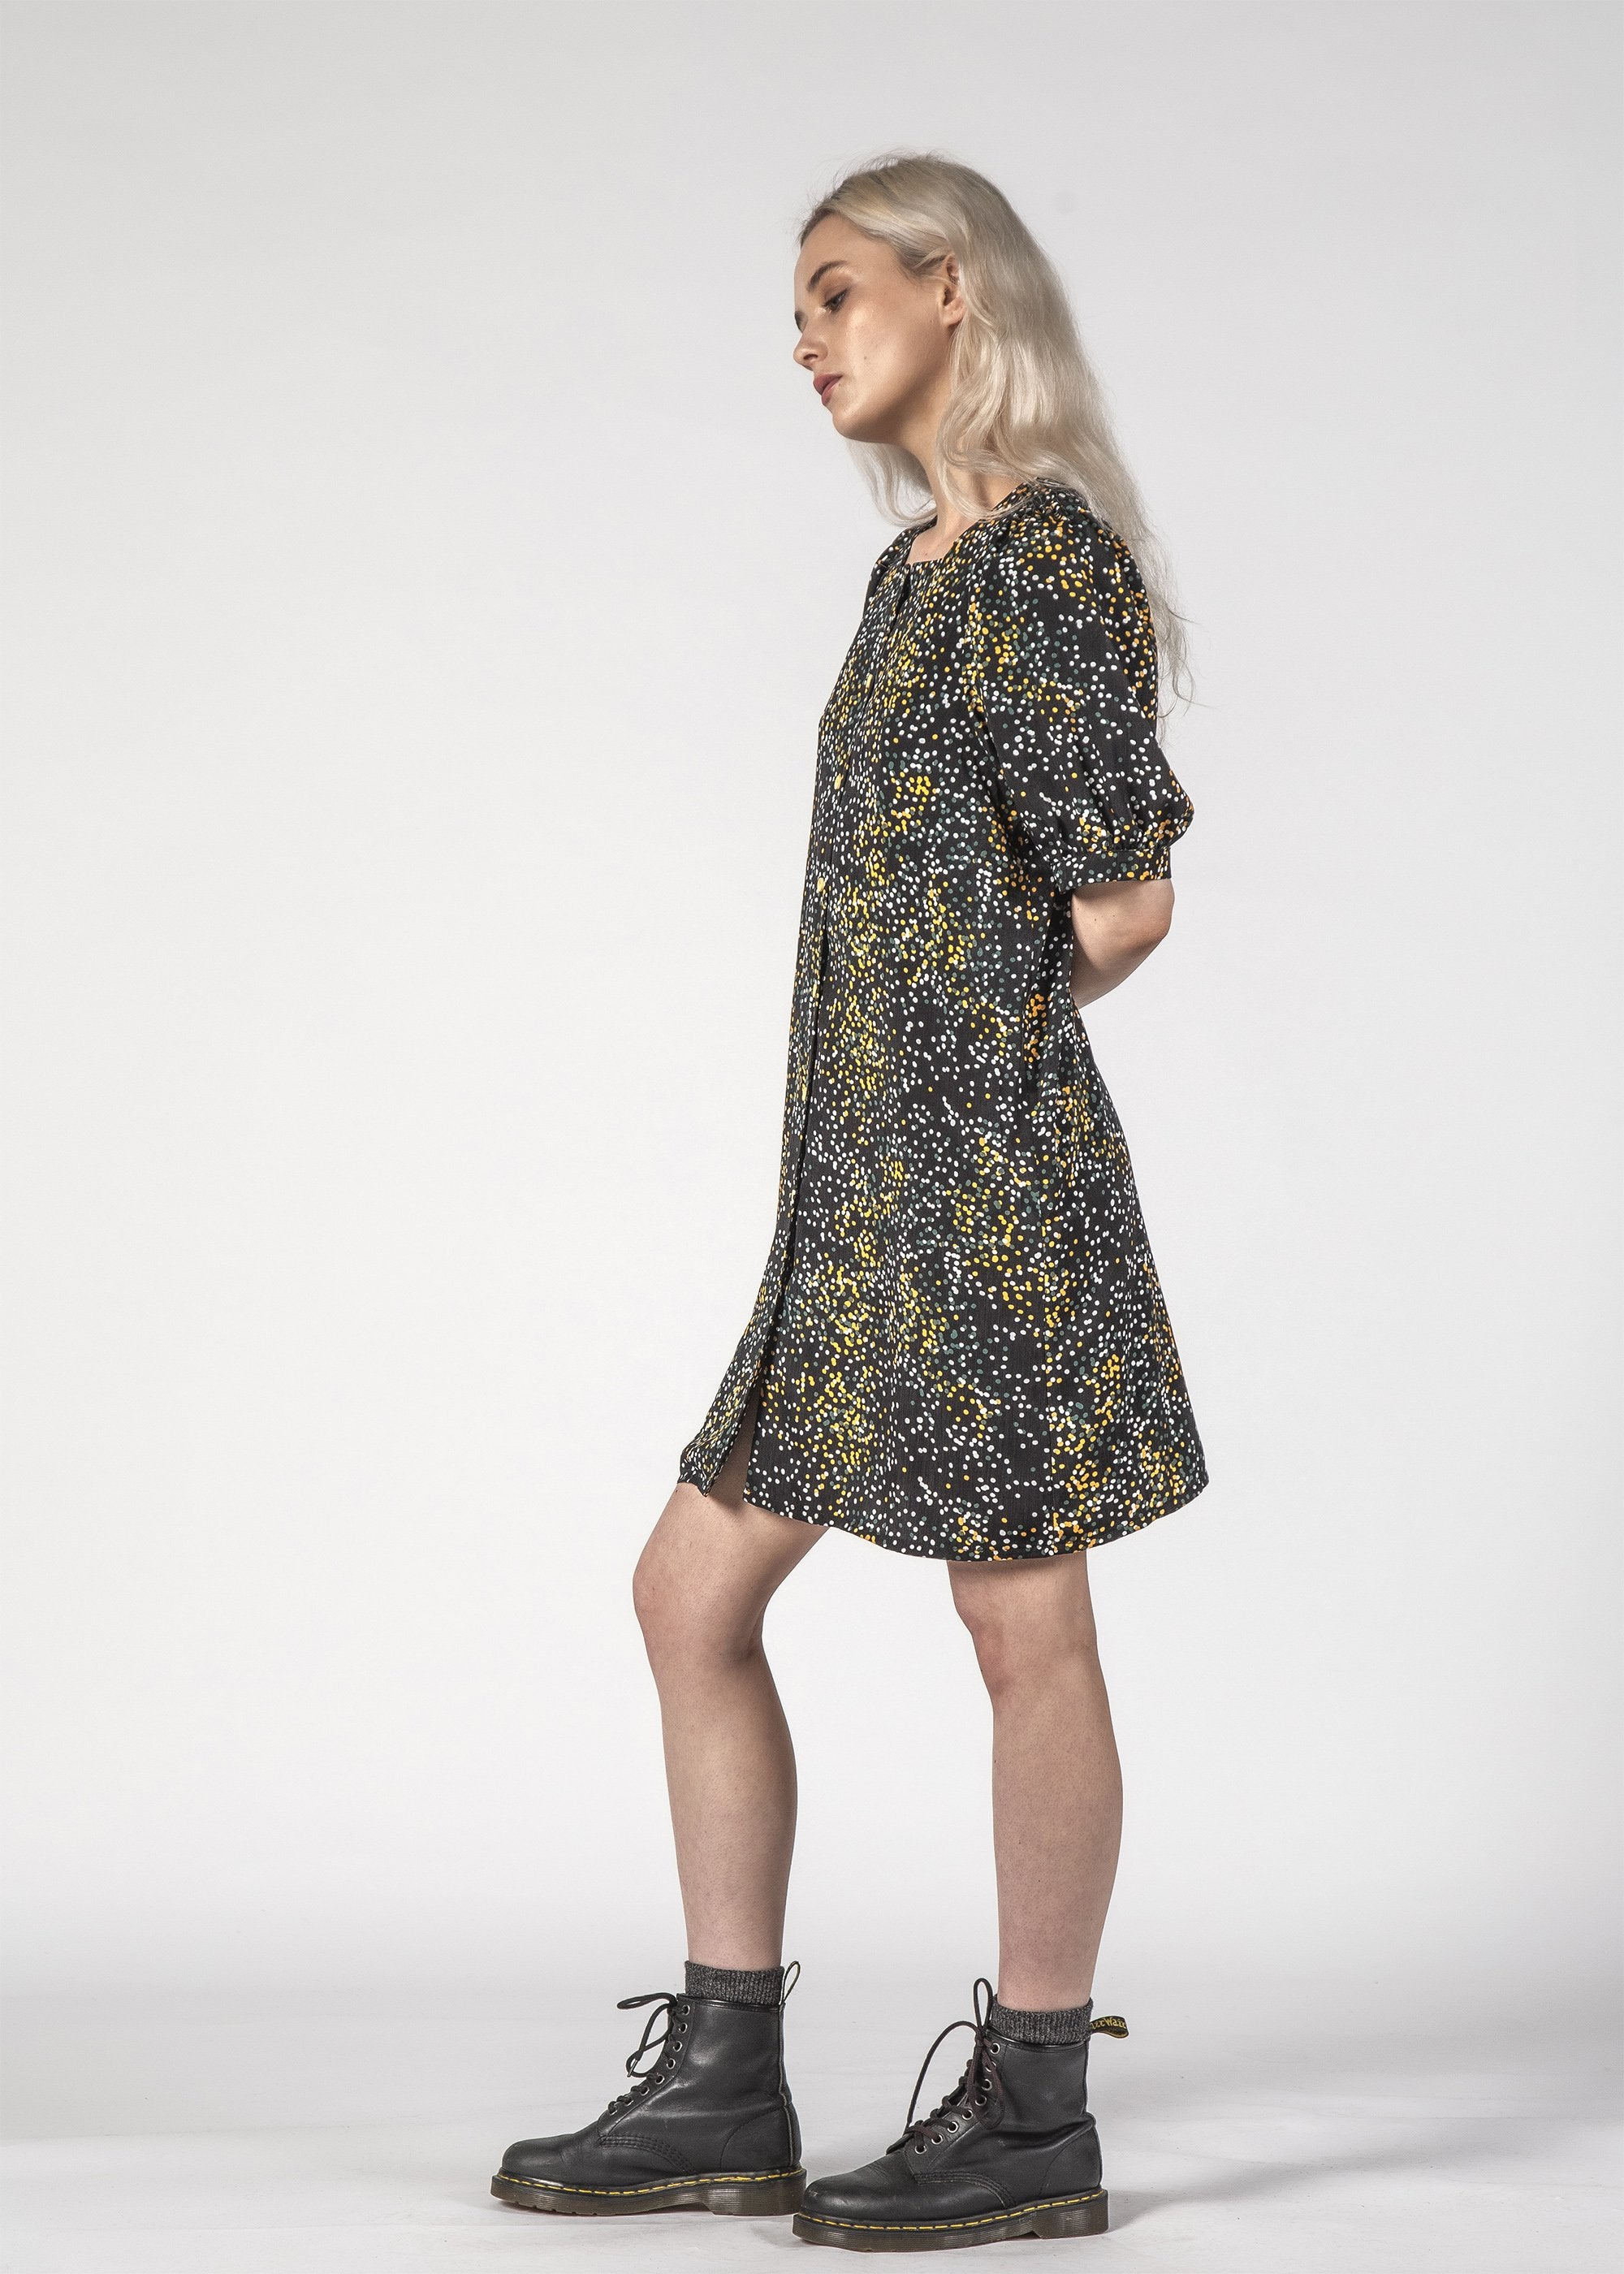 SALE - SMALL TALK DRESS - Black Mini Blotch